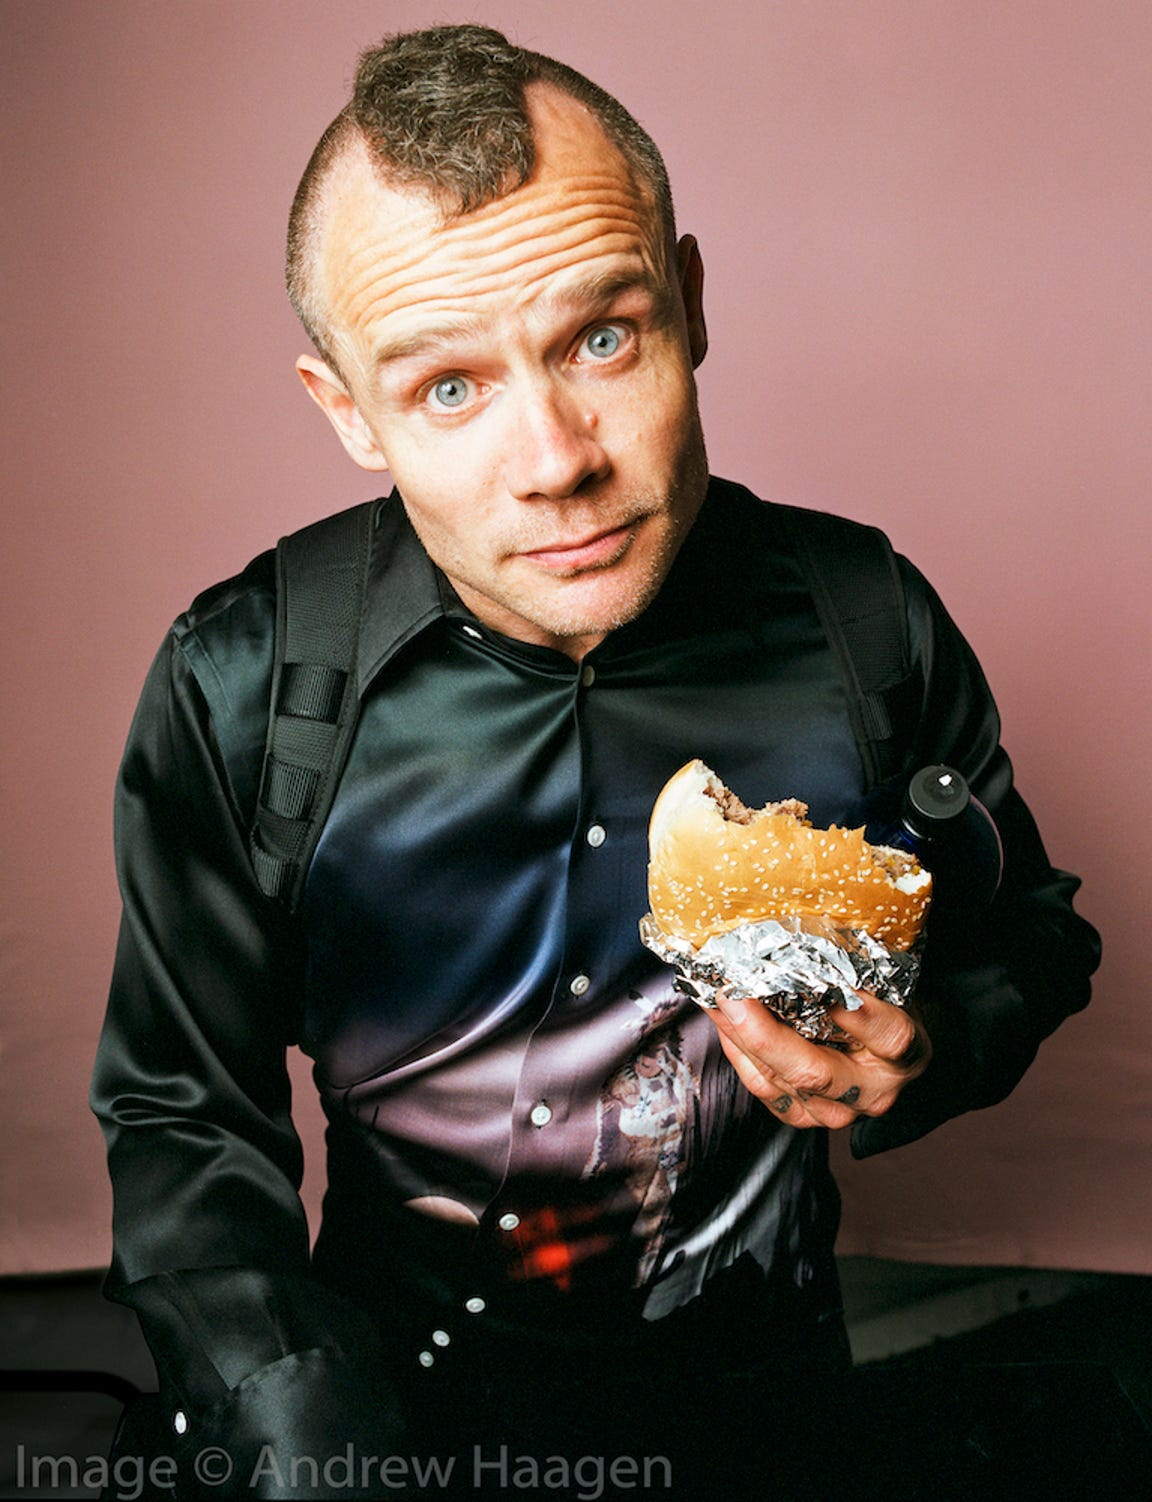 Flea, bassist for Red Hot Chili Peppers, had his portrait taken by Andrew Haagen in exchange for a burger